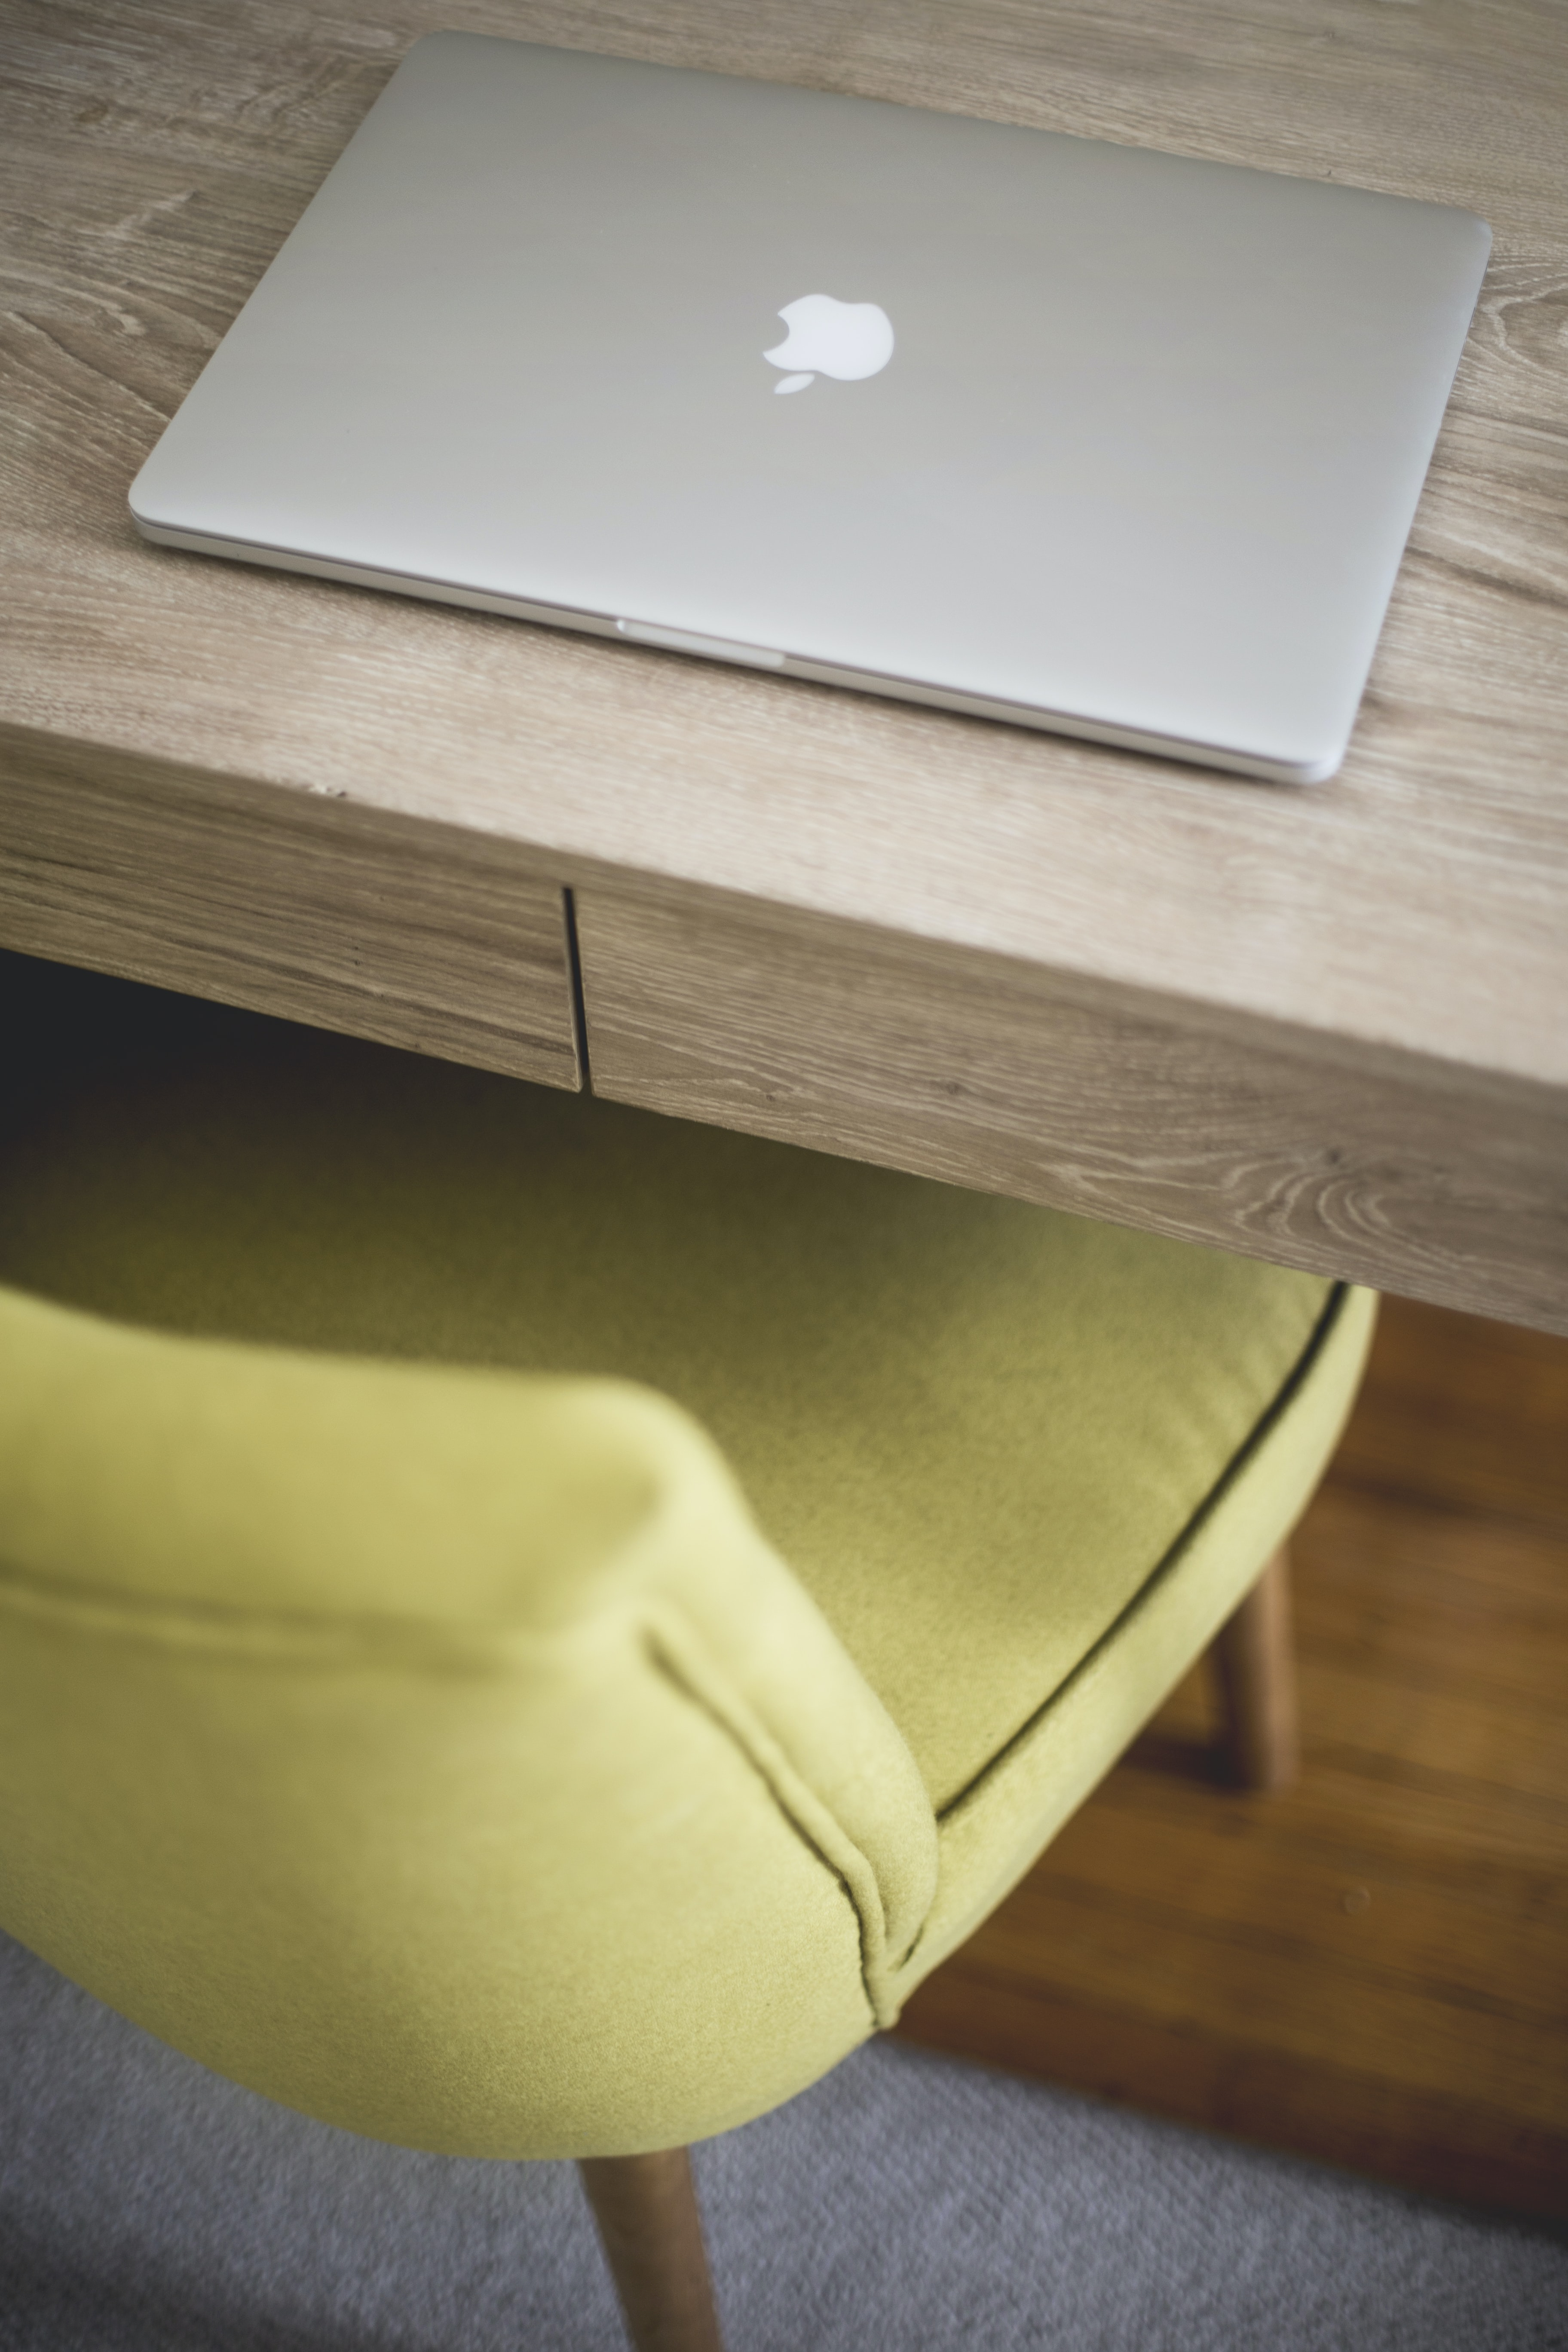 A MacBook on a wooden desk with a green chair